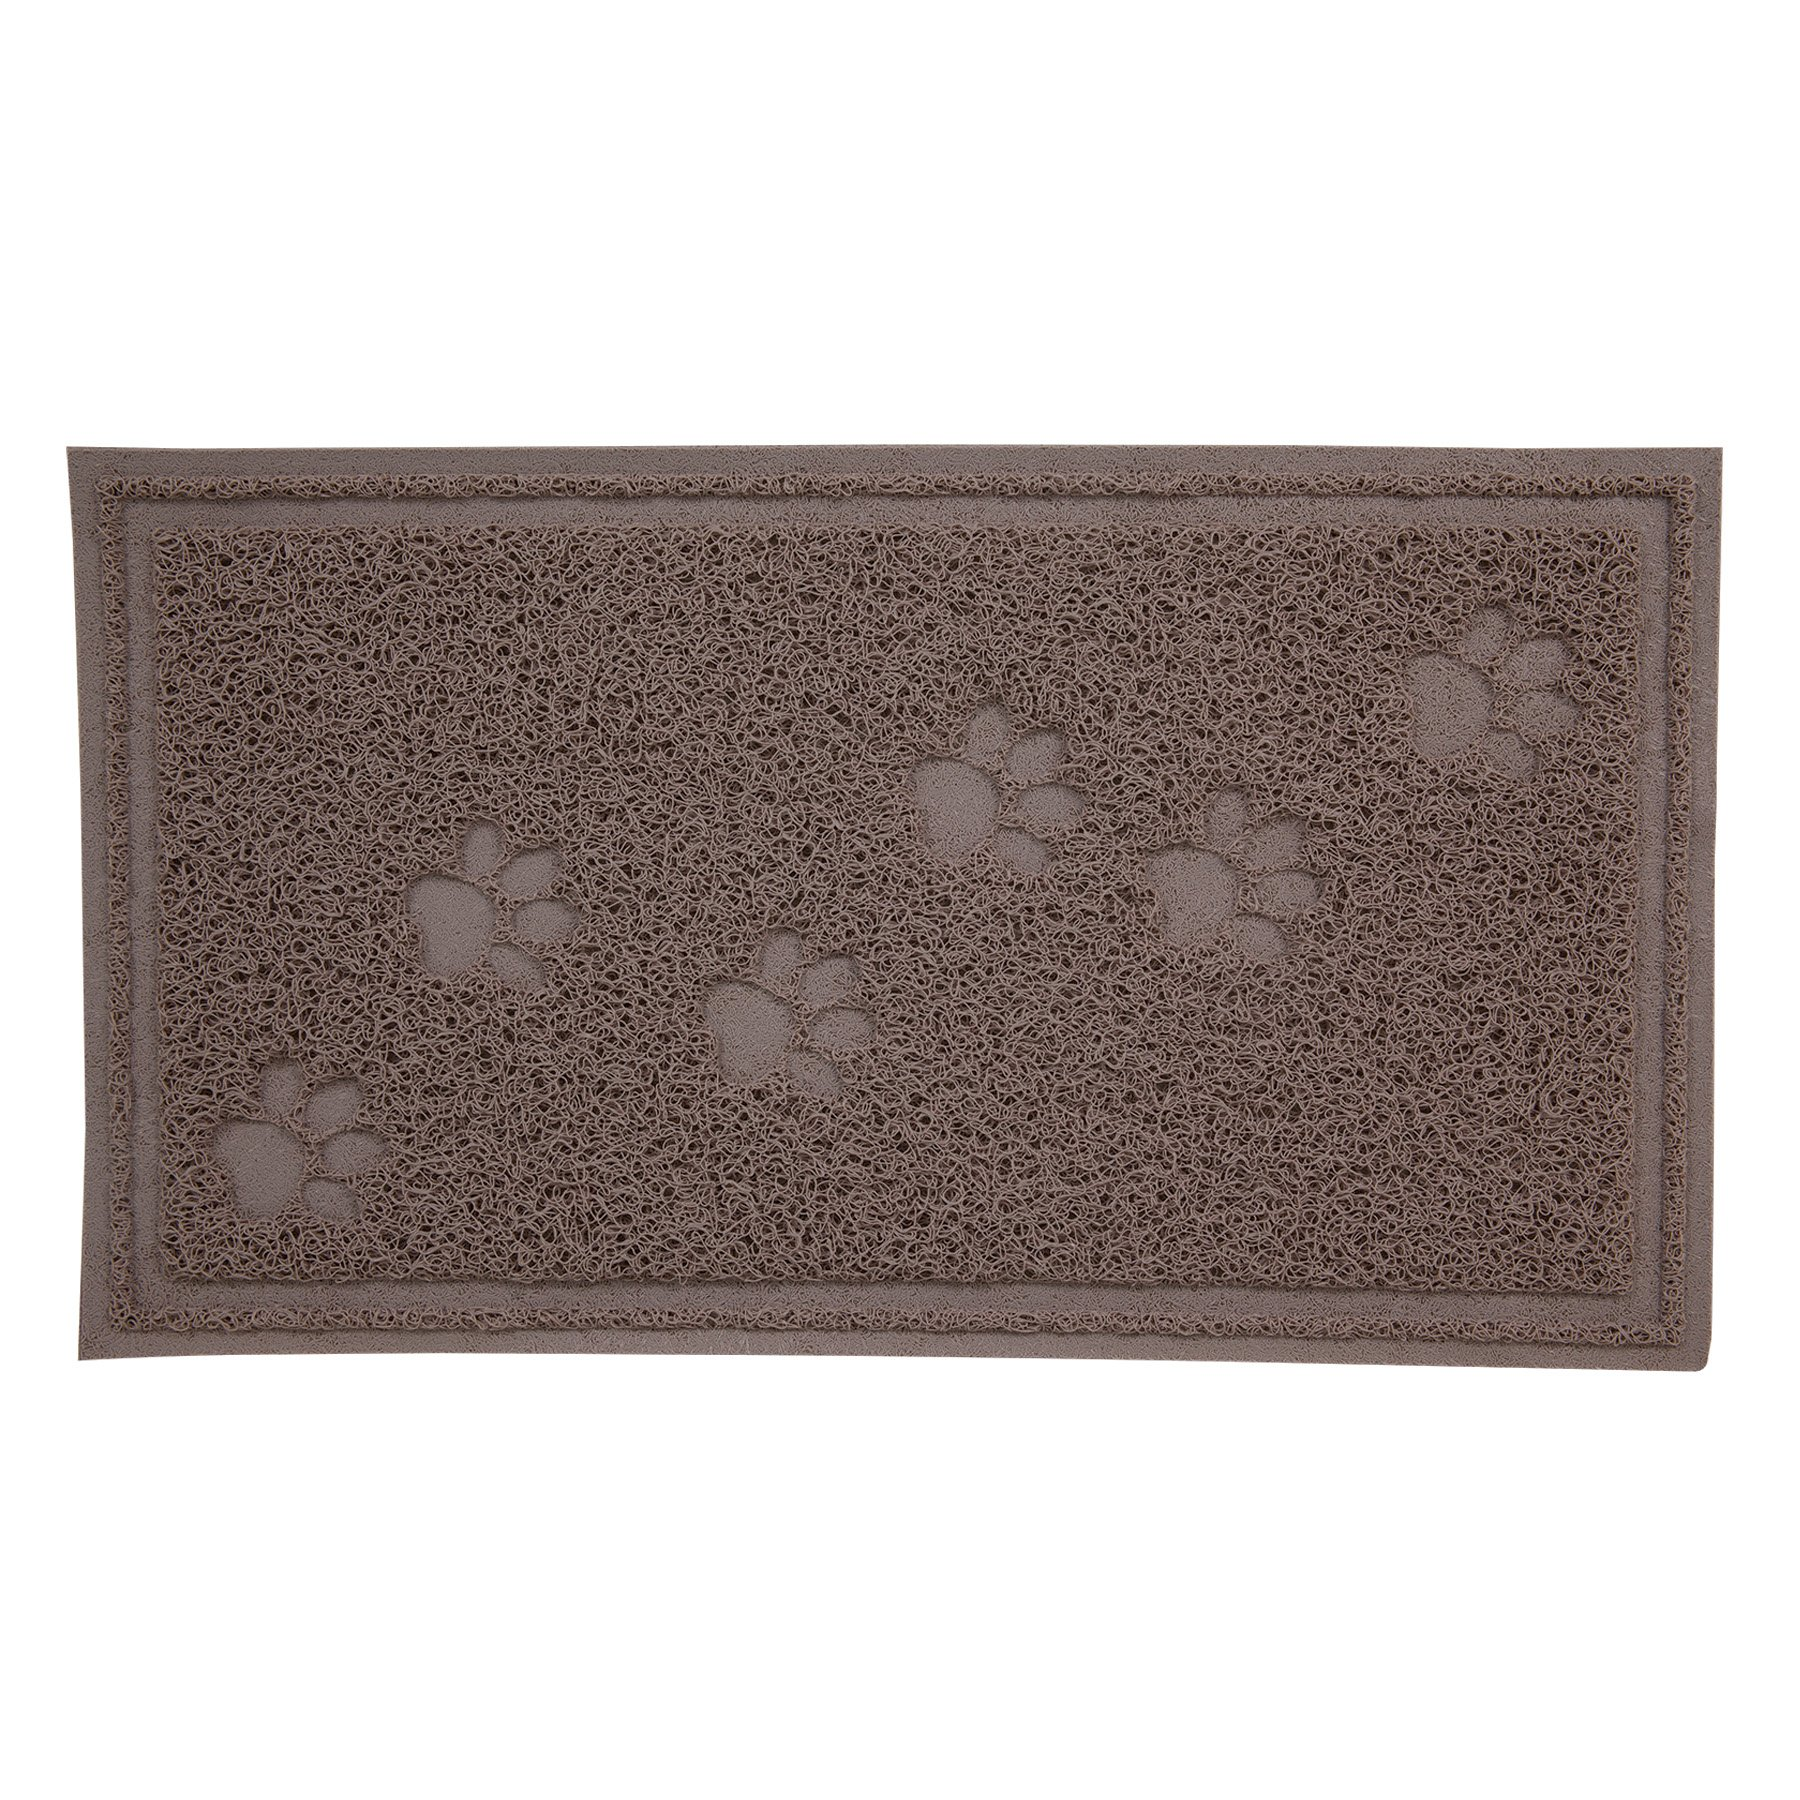 Petmate Arm & Hammer Litter Mat with Paw Design, 23 by 13-Inch